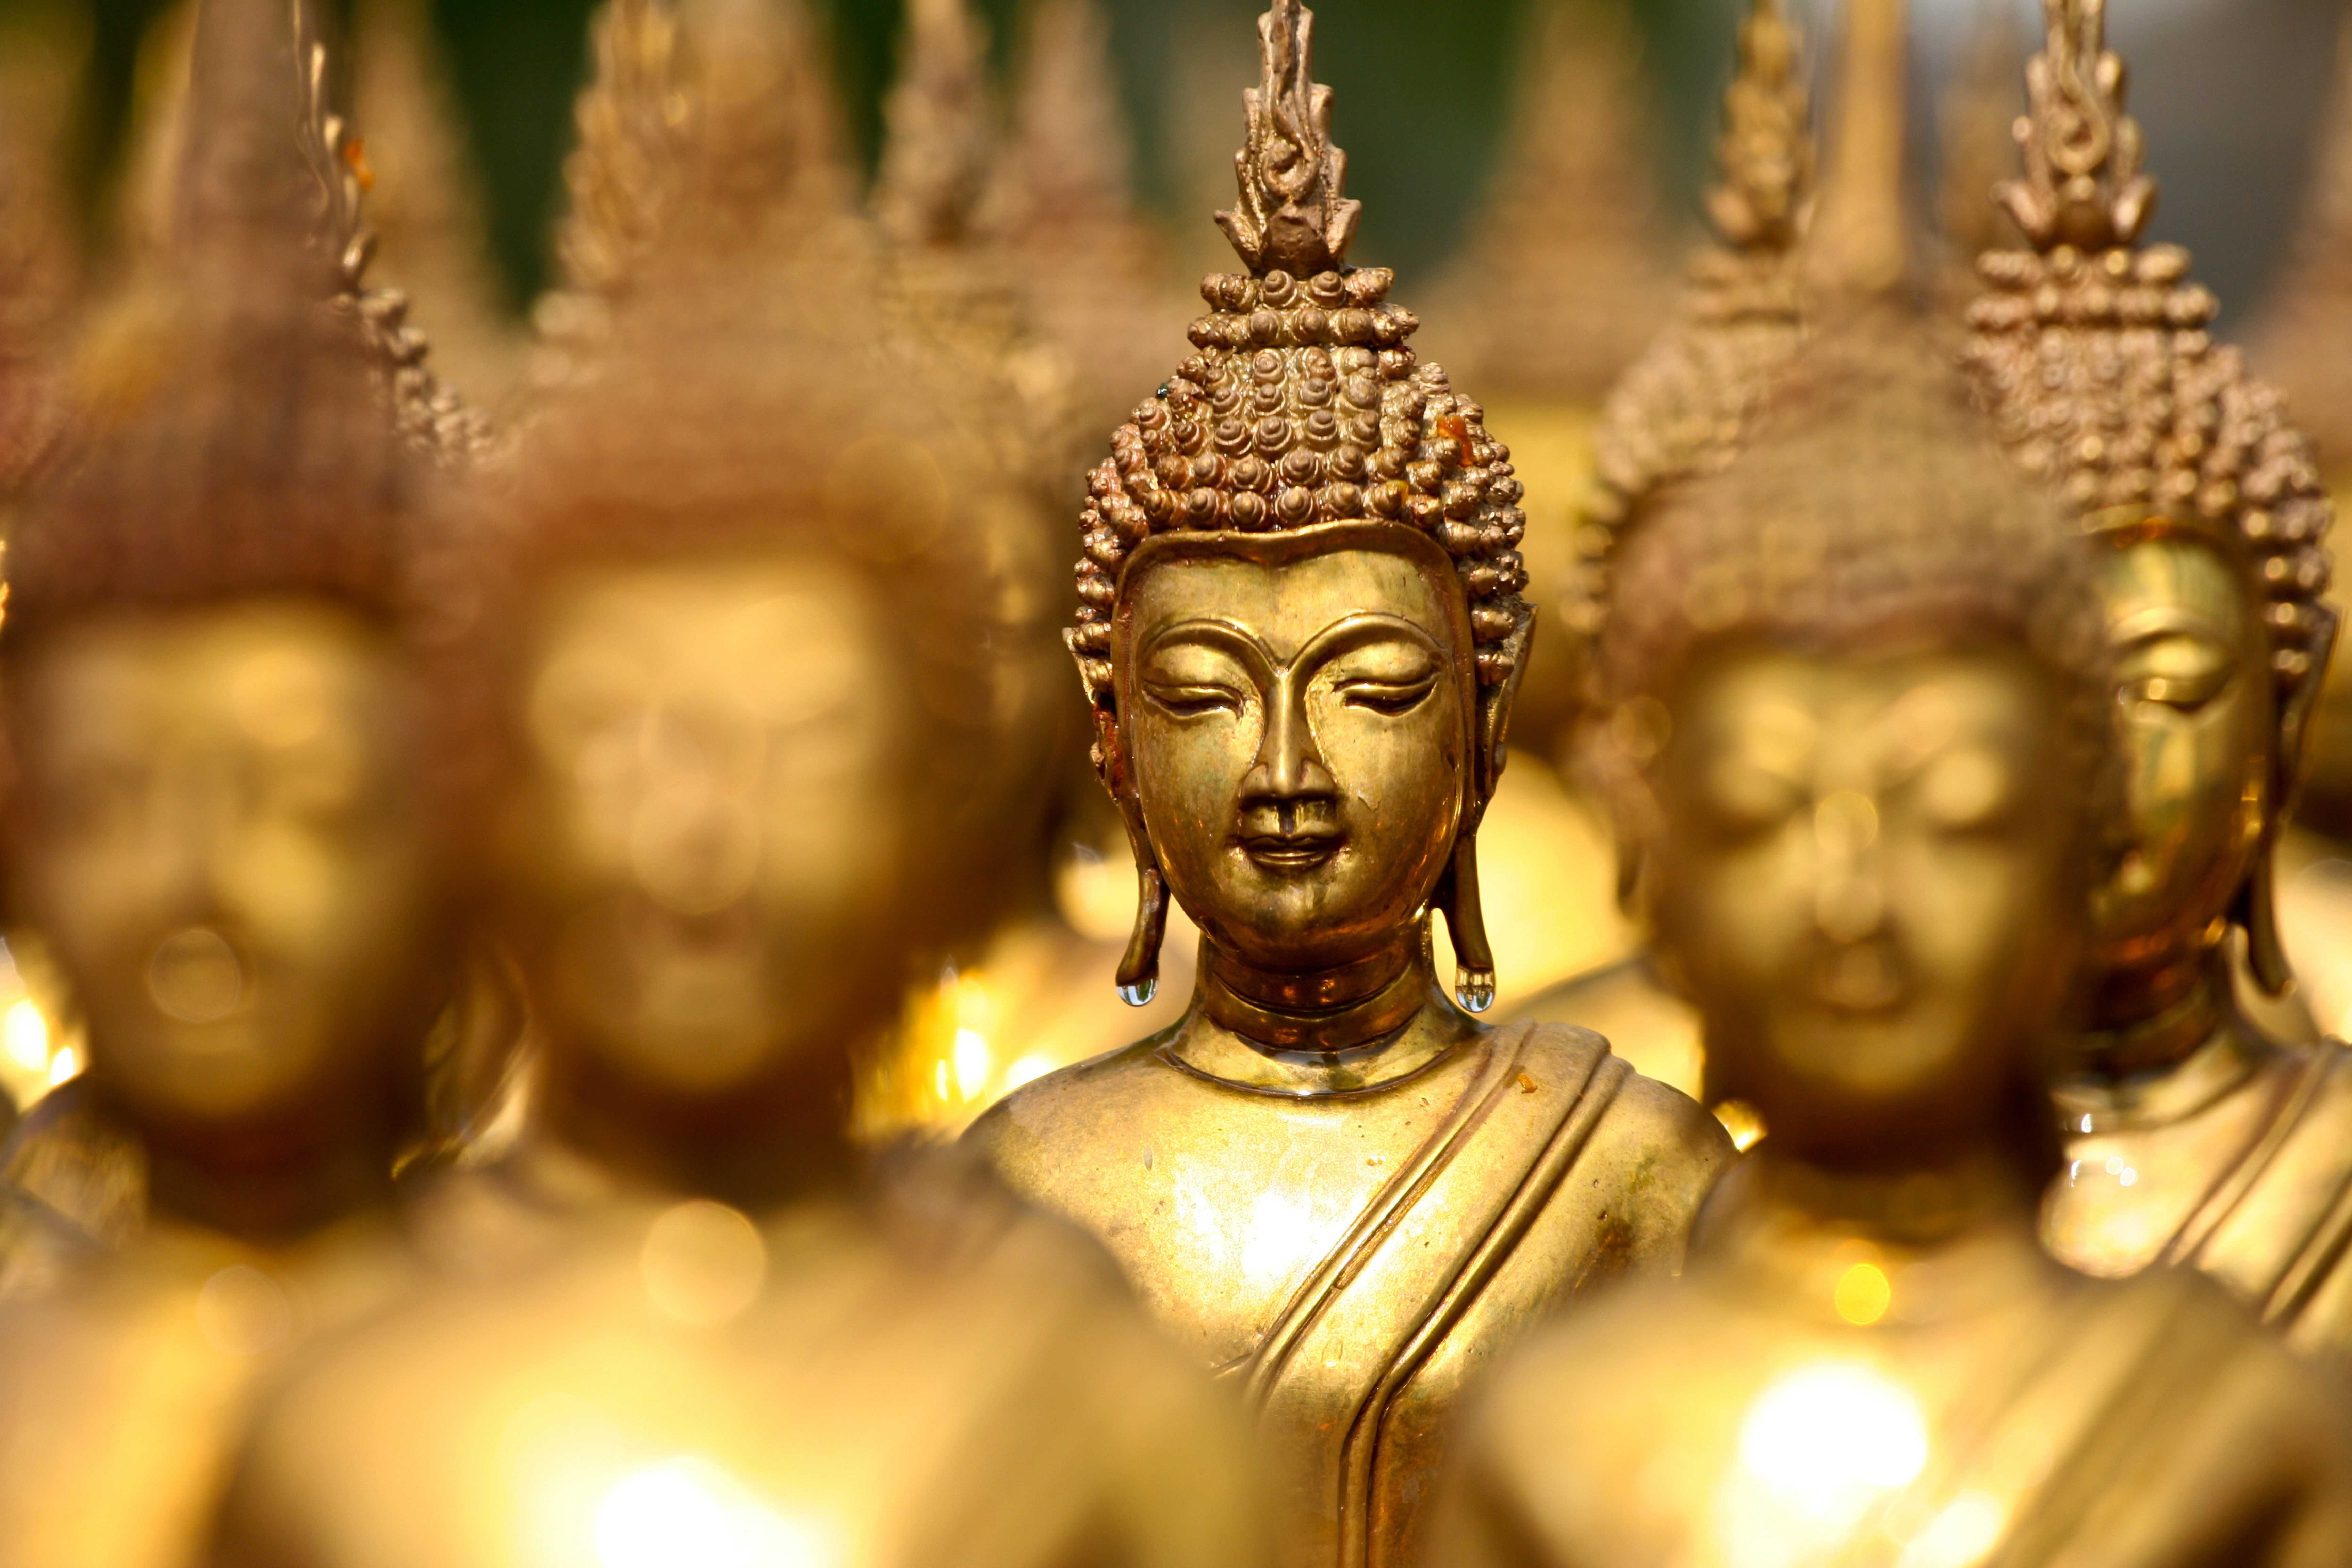 6912x4608 Buddha wallpaper for desktop and mobile in high resolution download ...